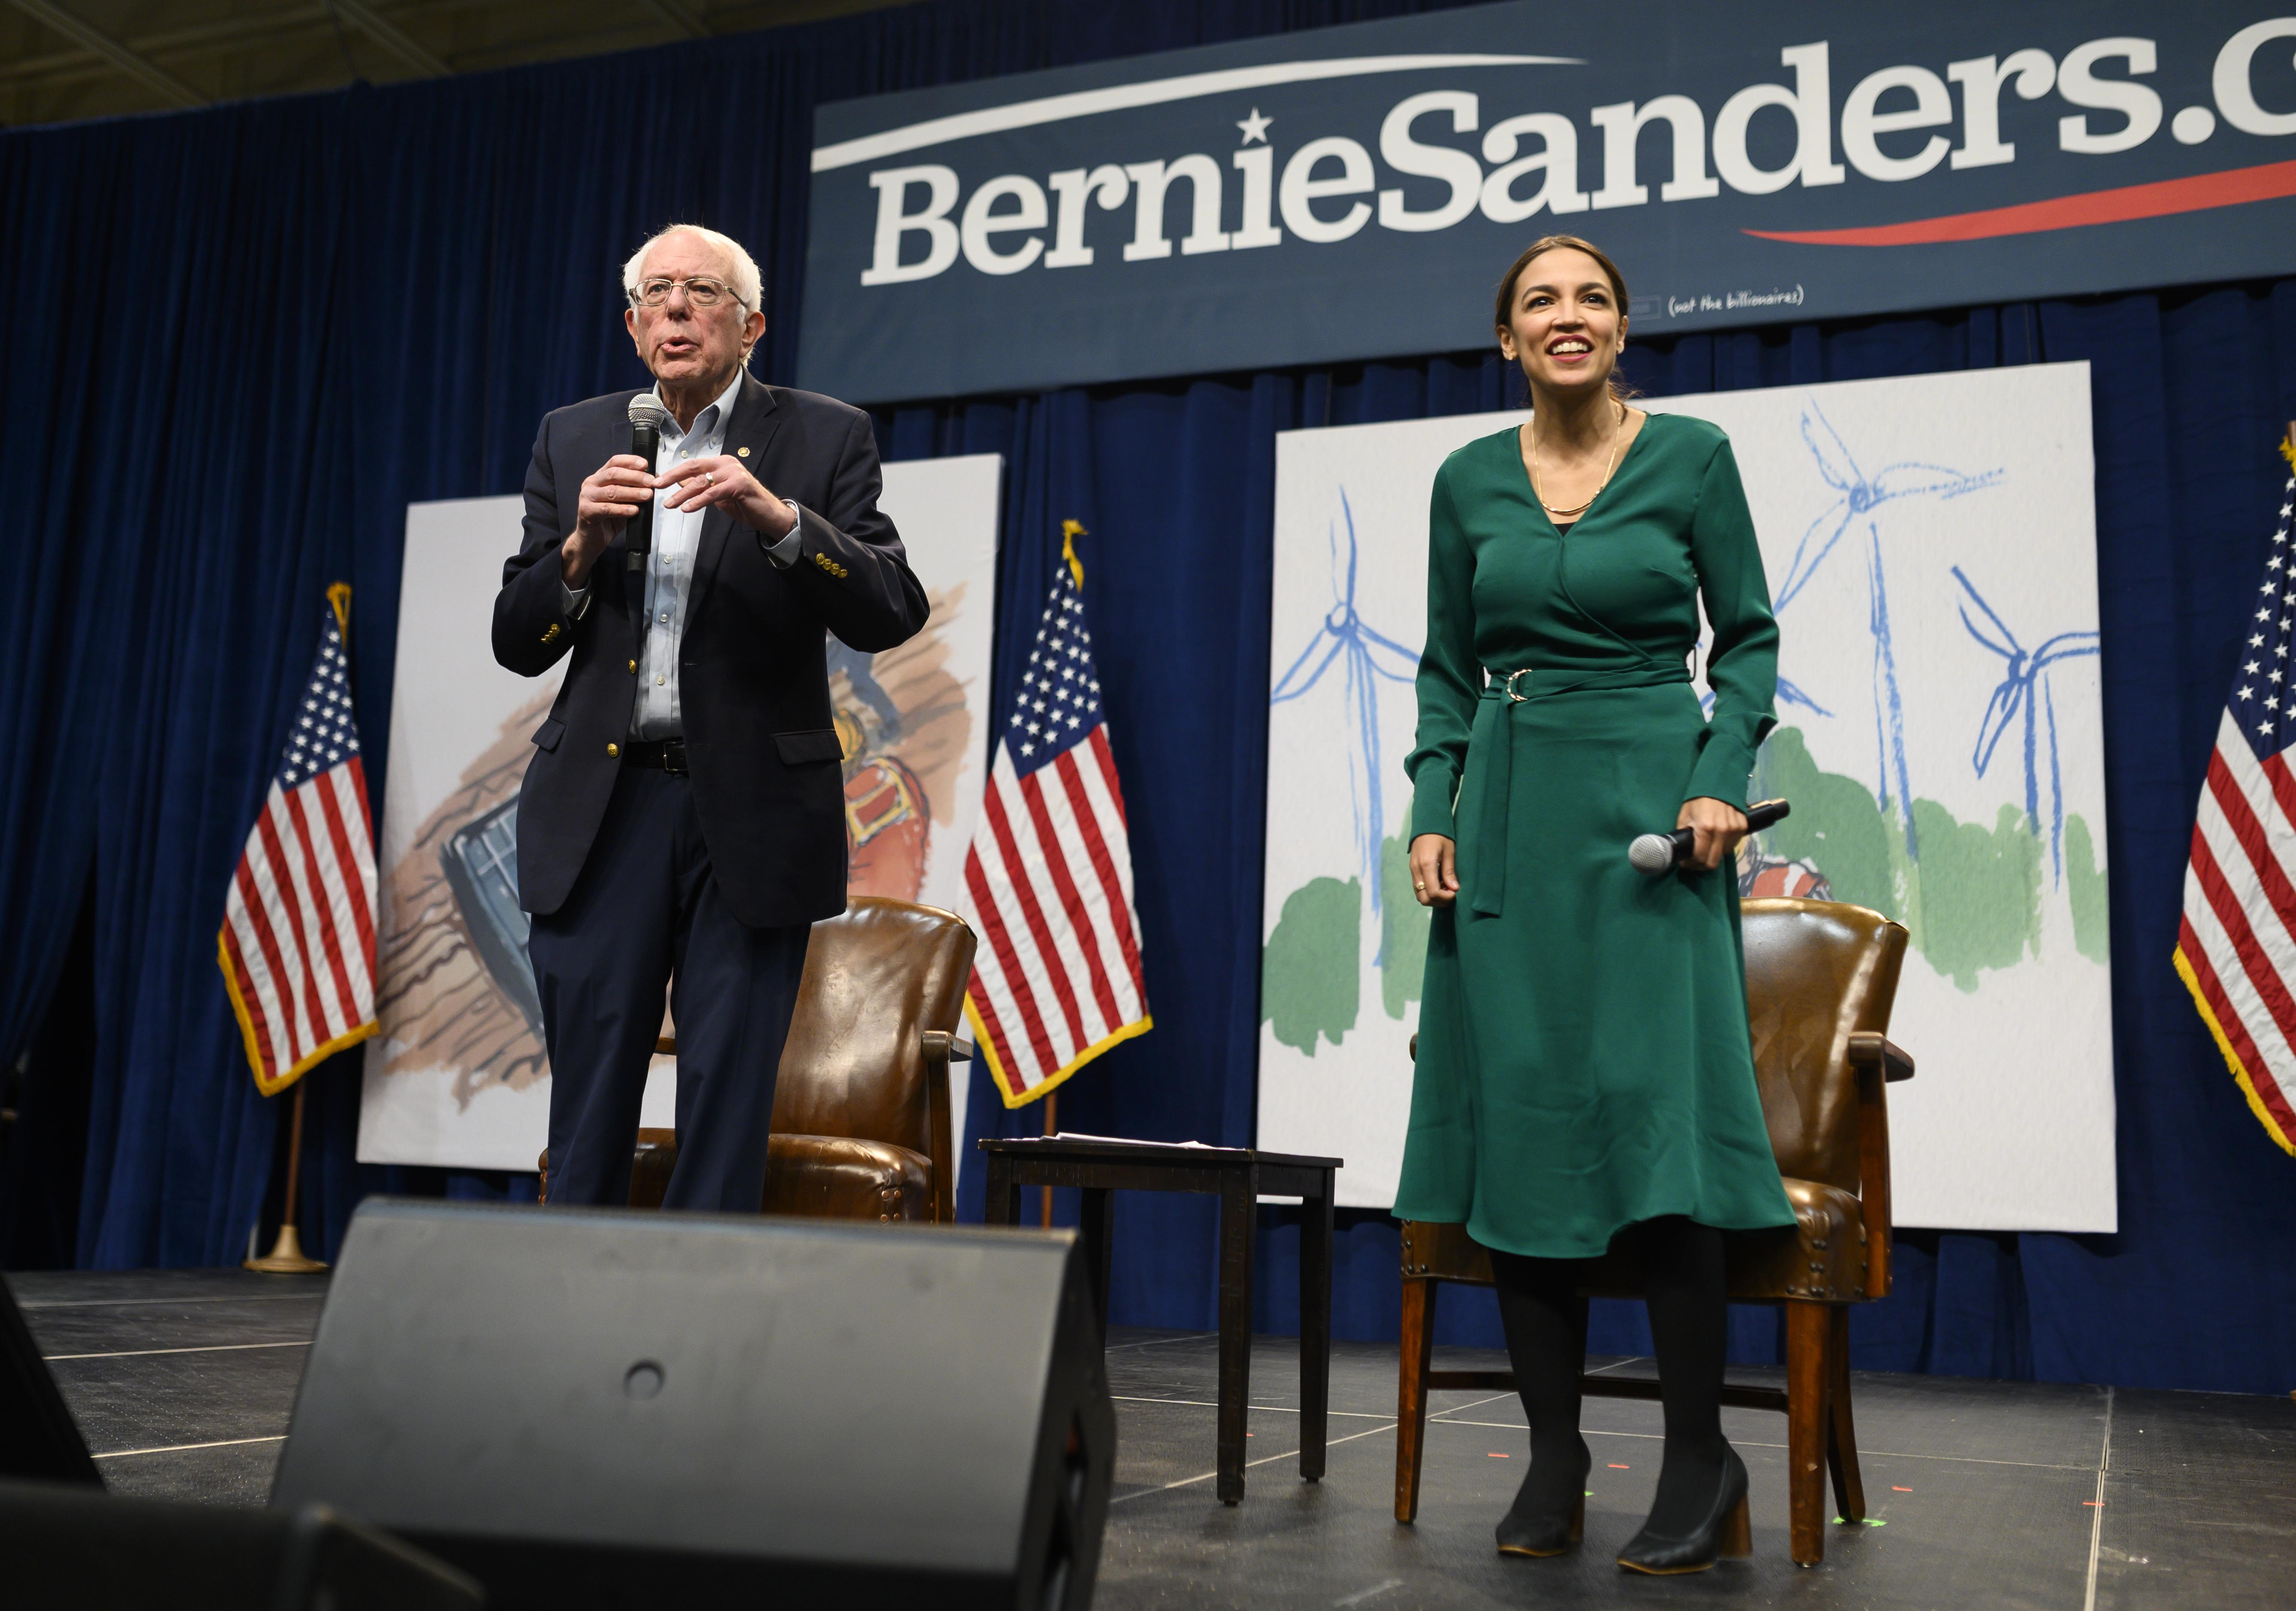 Sanders Couldn't Stop Laughing at Report of Bezos Asking Bloomberg About Presidential Run